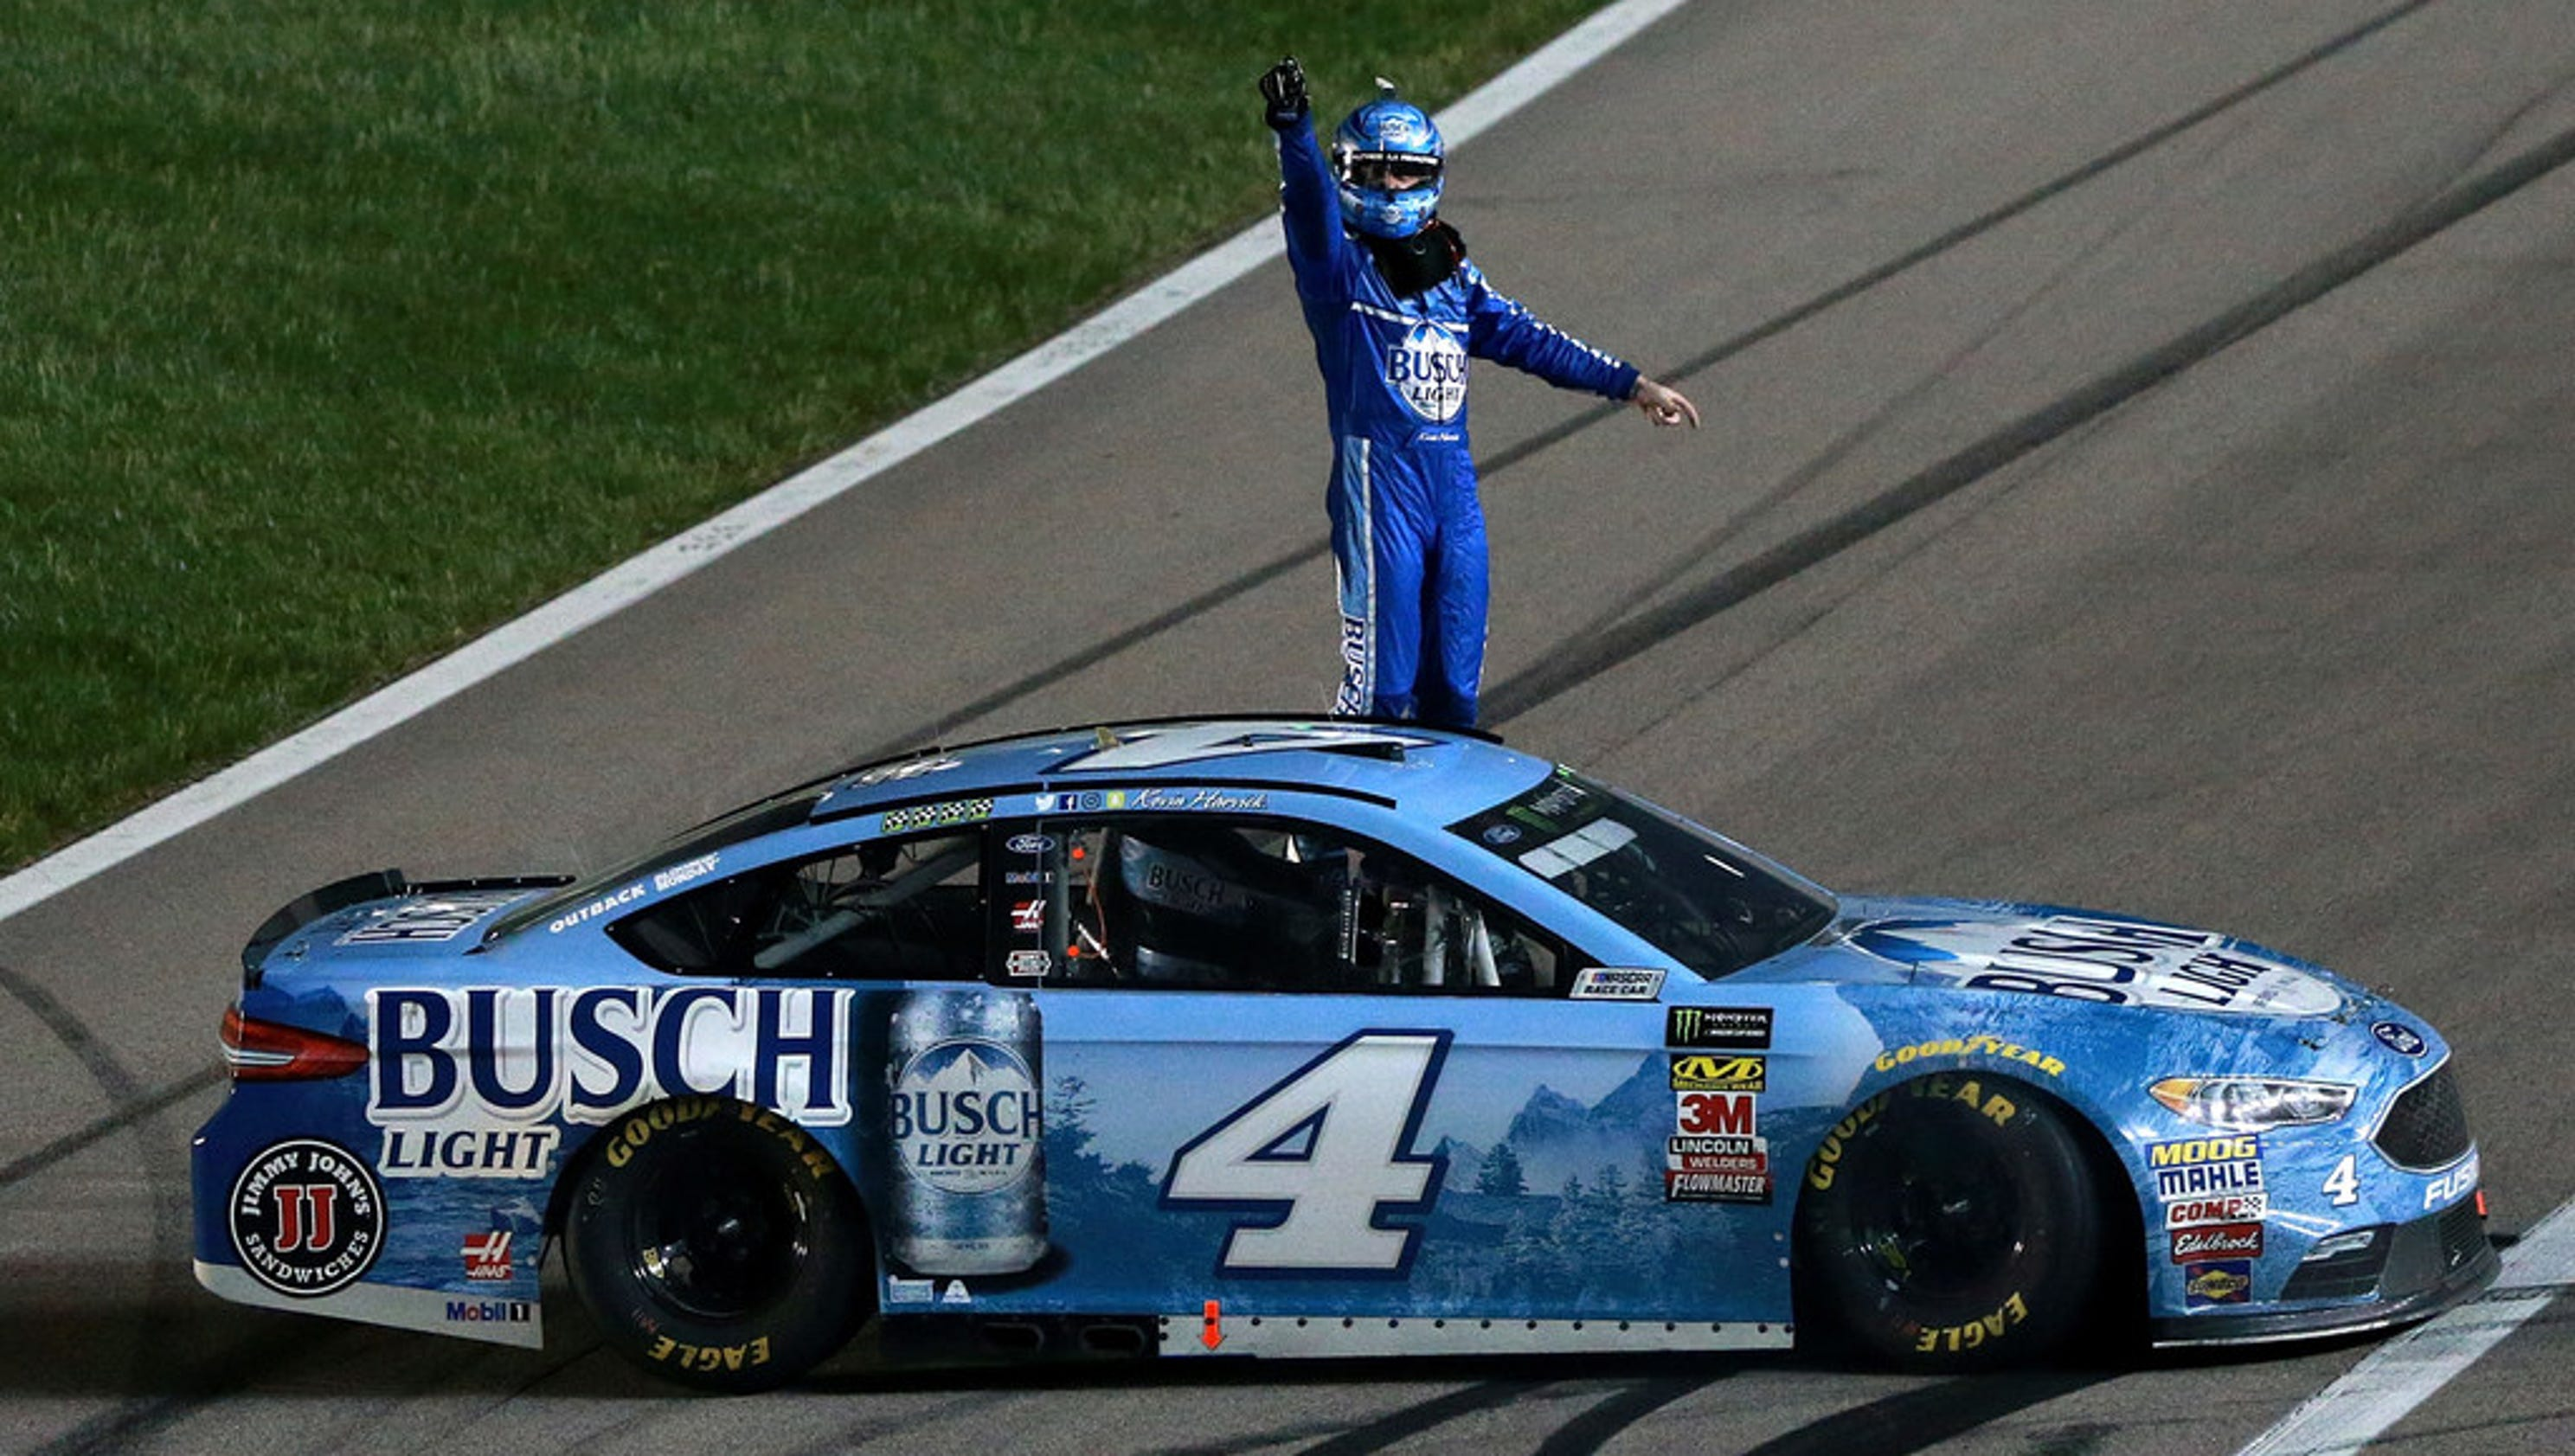 636618082347157653-harvick-on-winning-car